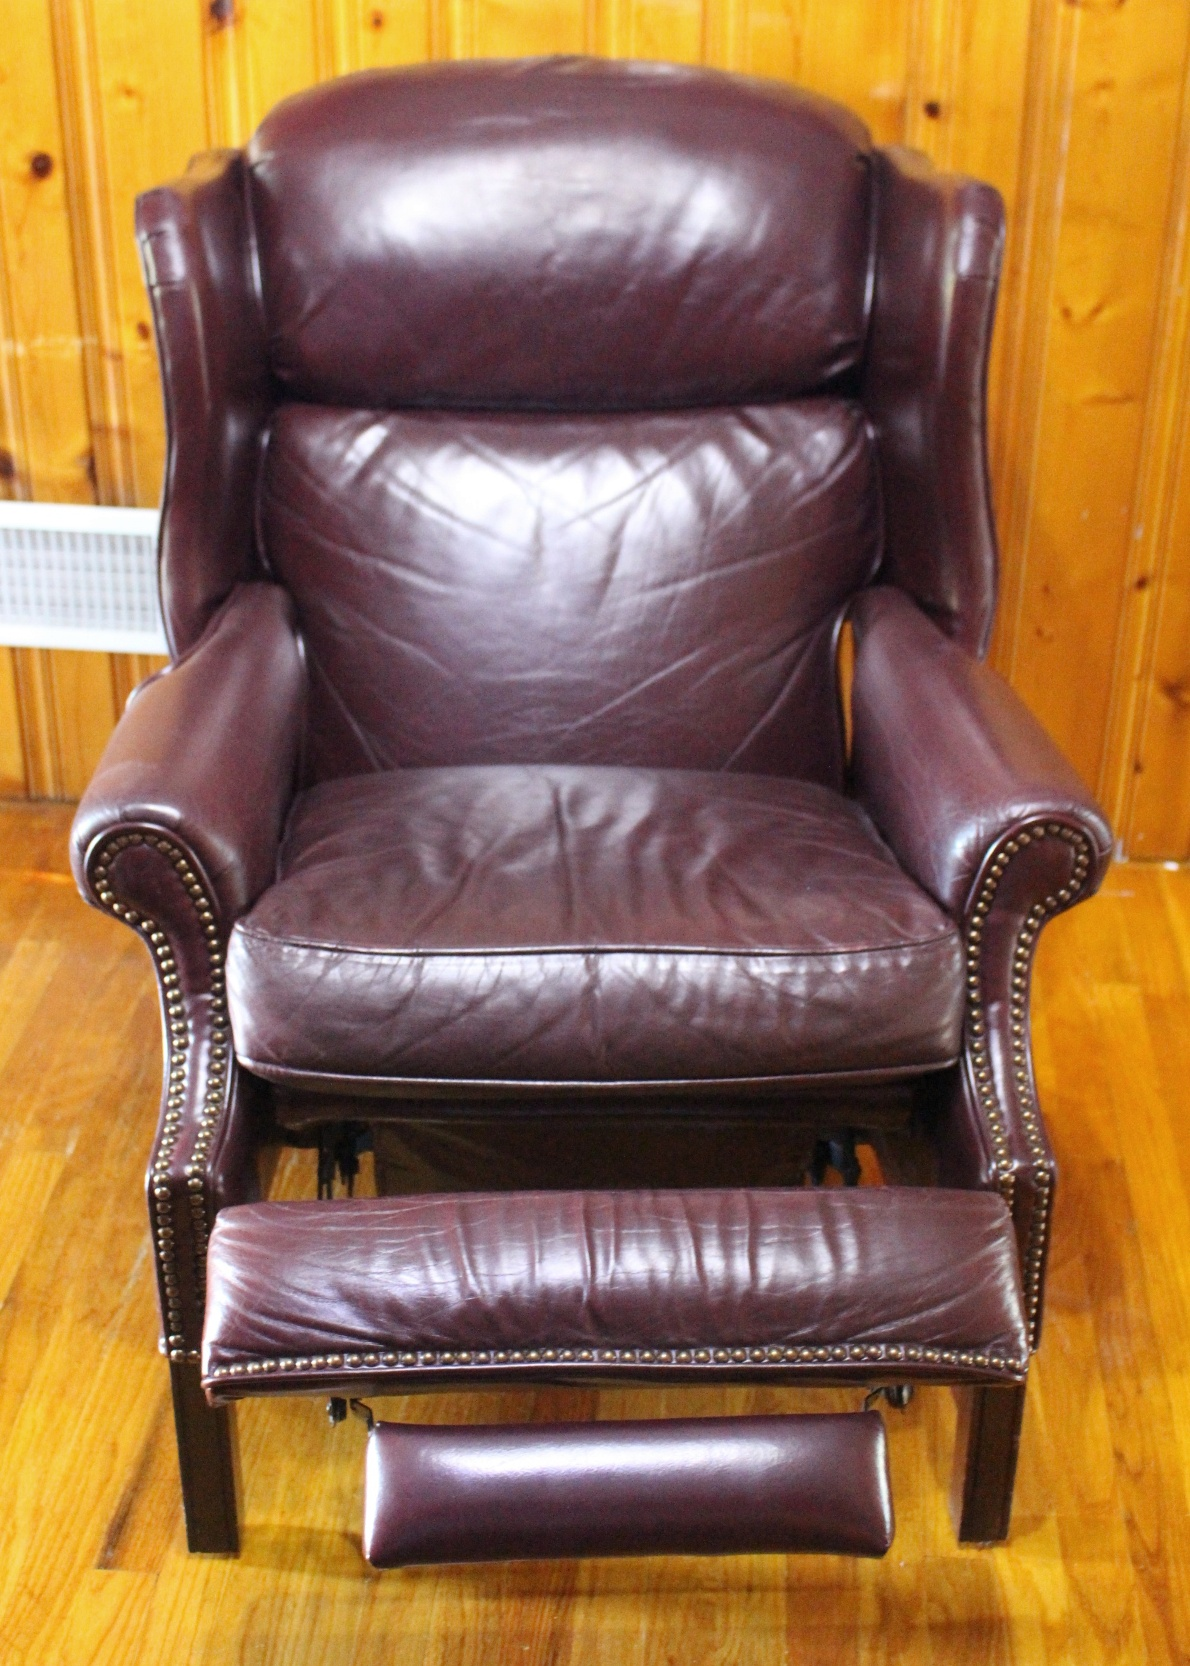 leather chairs for sale chair mat bamboo burgundy barcalounger wingback recliner : ebth